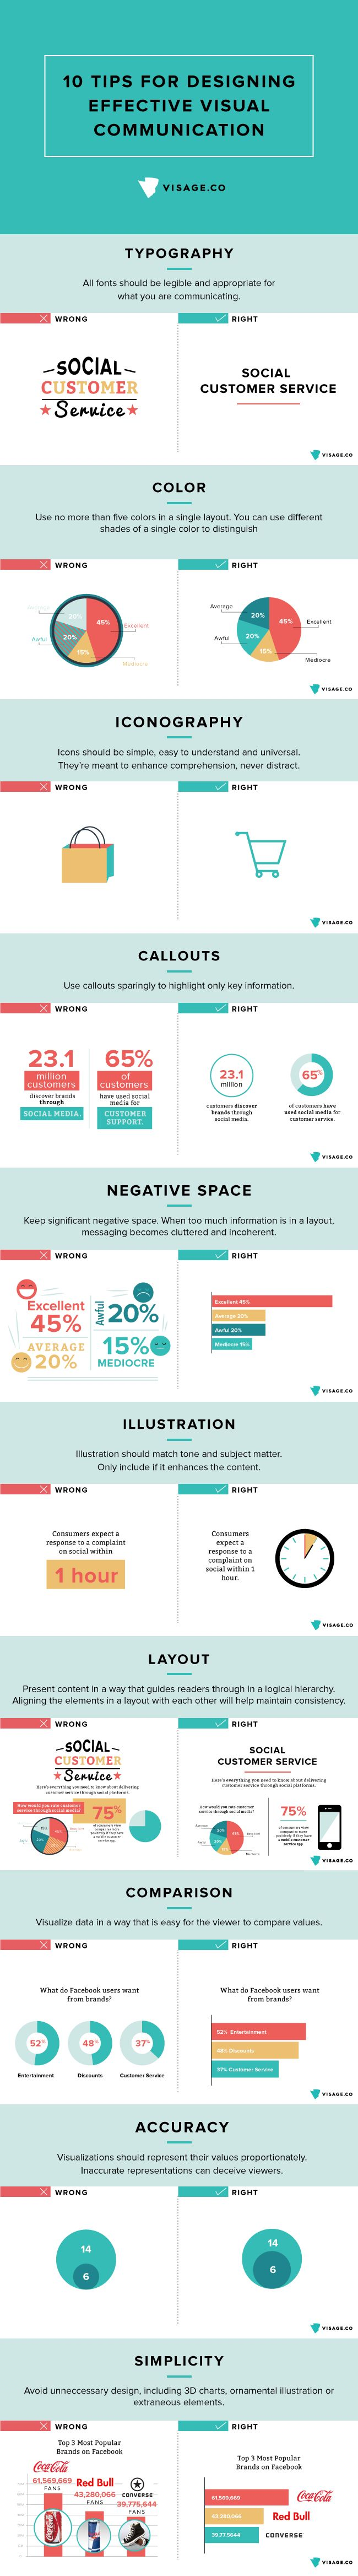 Before & After: Turning Mediocre Design Into Effective Visual Communication